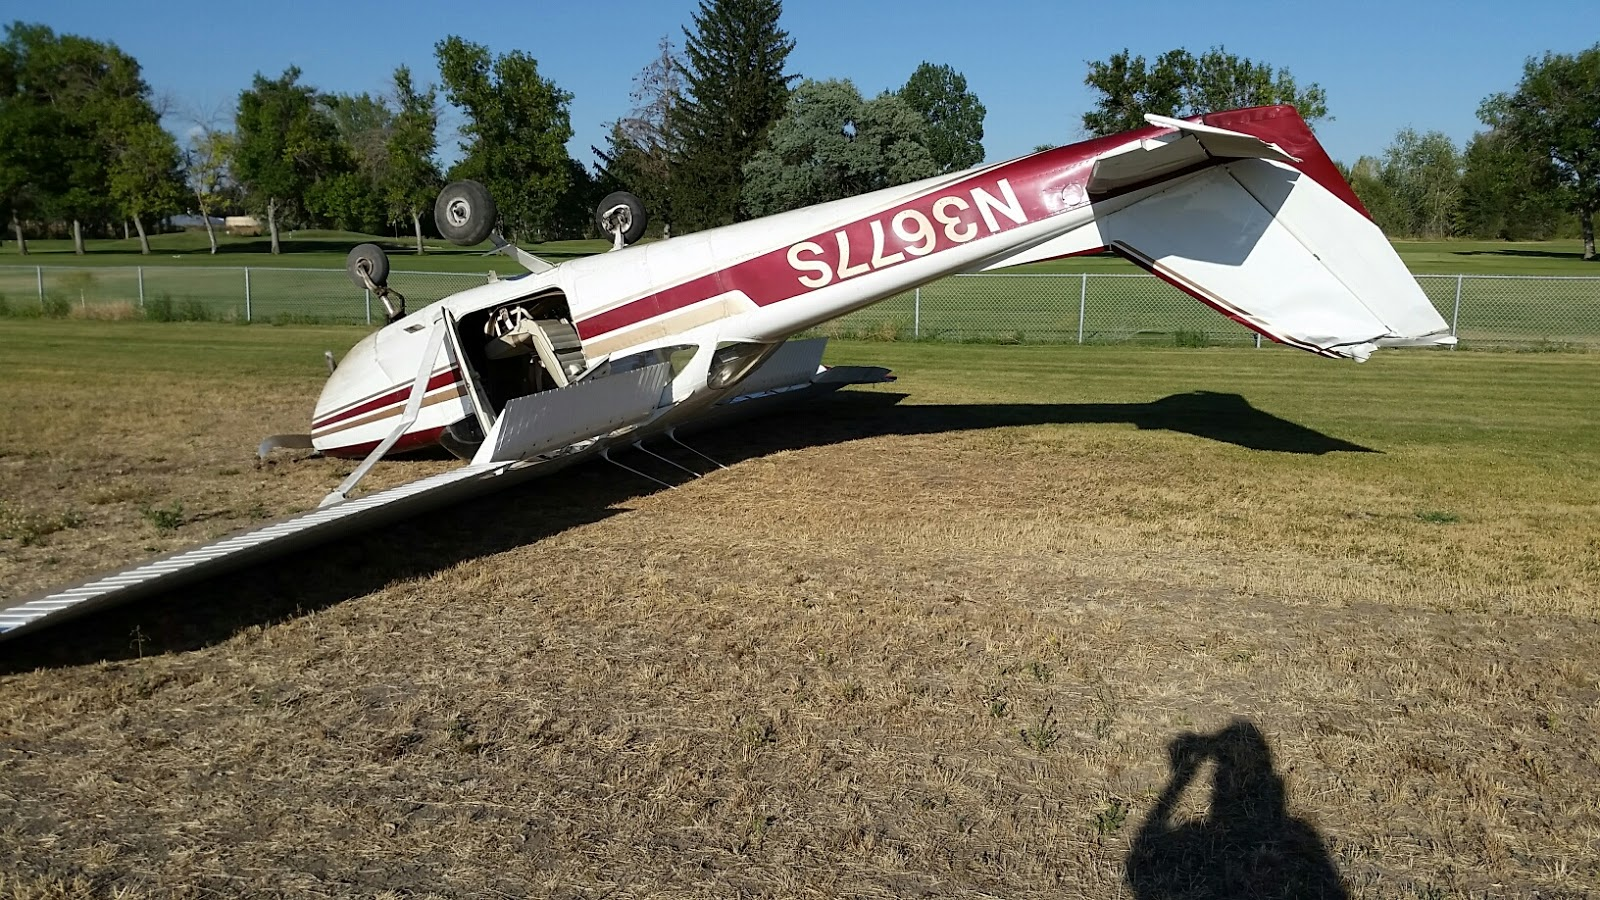 Kathryn's Report: Cessna 172E Skyhawk, N3677S: Accident